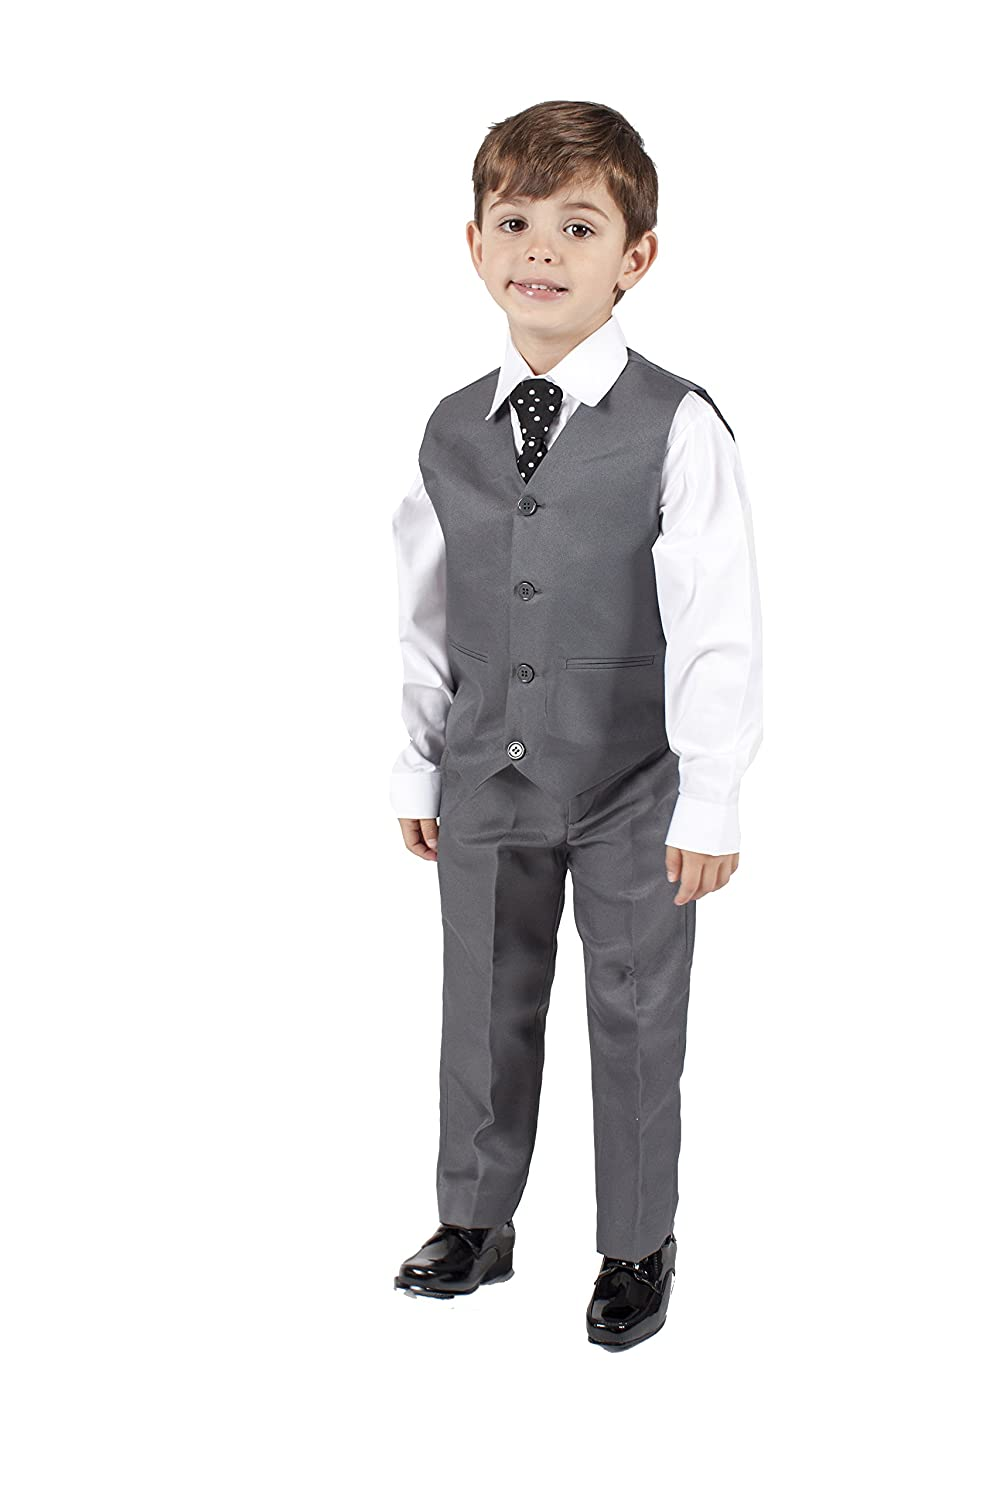 1930s Childrens Fashion: Girls, Boys, Toddler, Baby Costumes Boys Grey 4 Piece Waistcoat Suit £16.99 AT vintagedancer.com